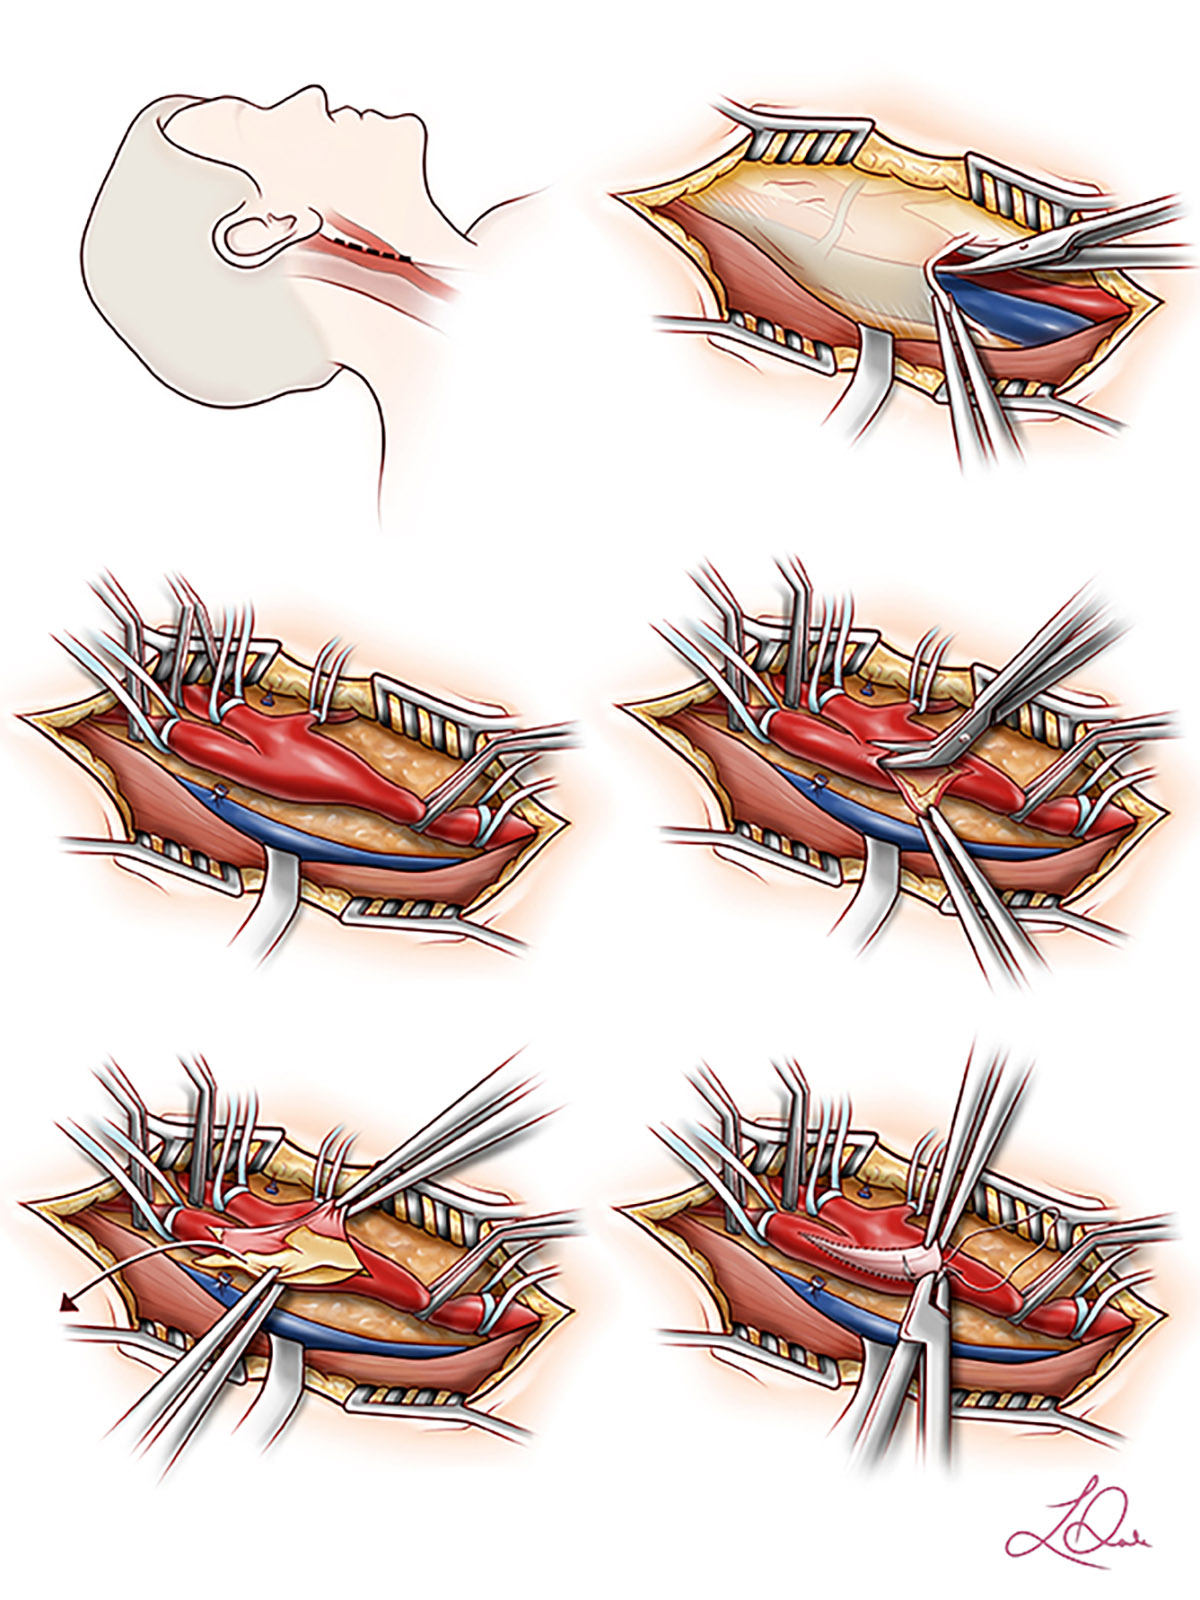 An illustration of a surgery.